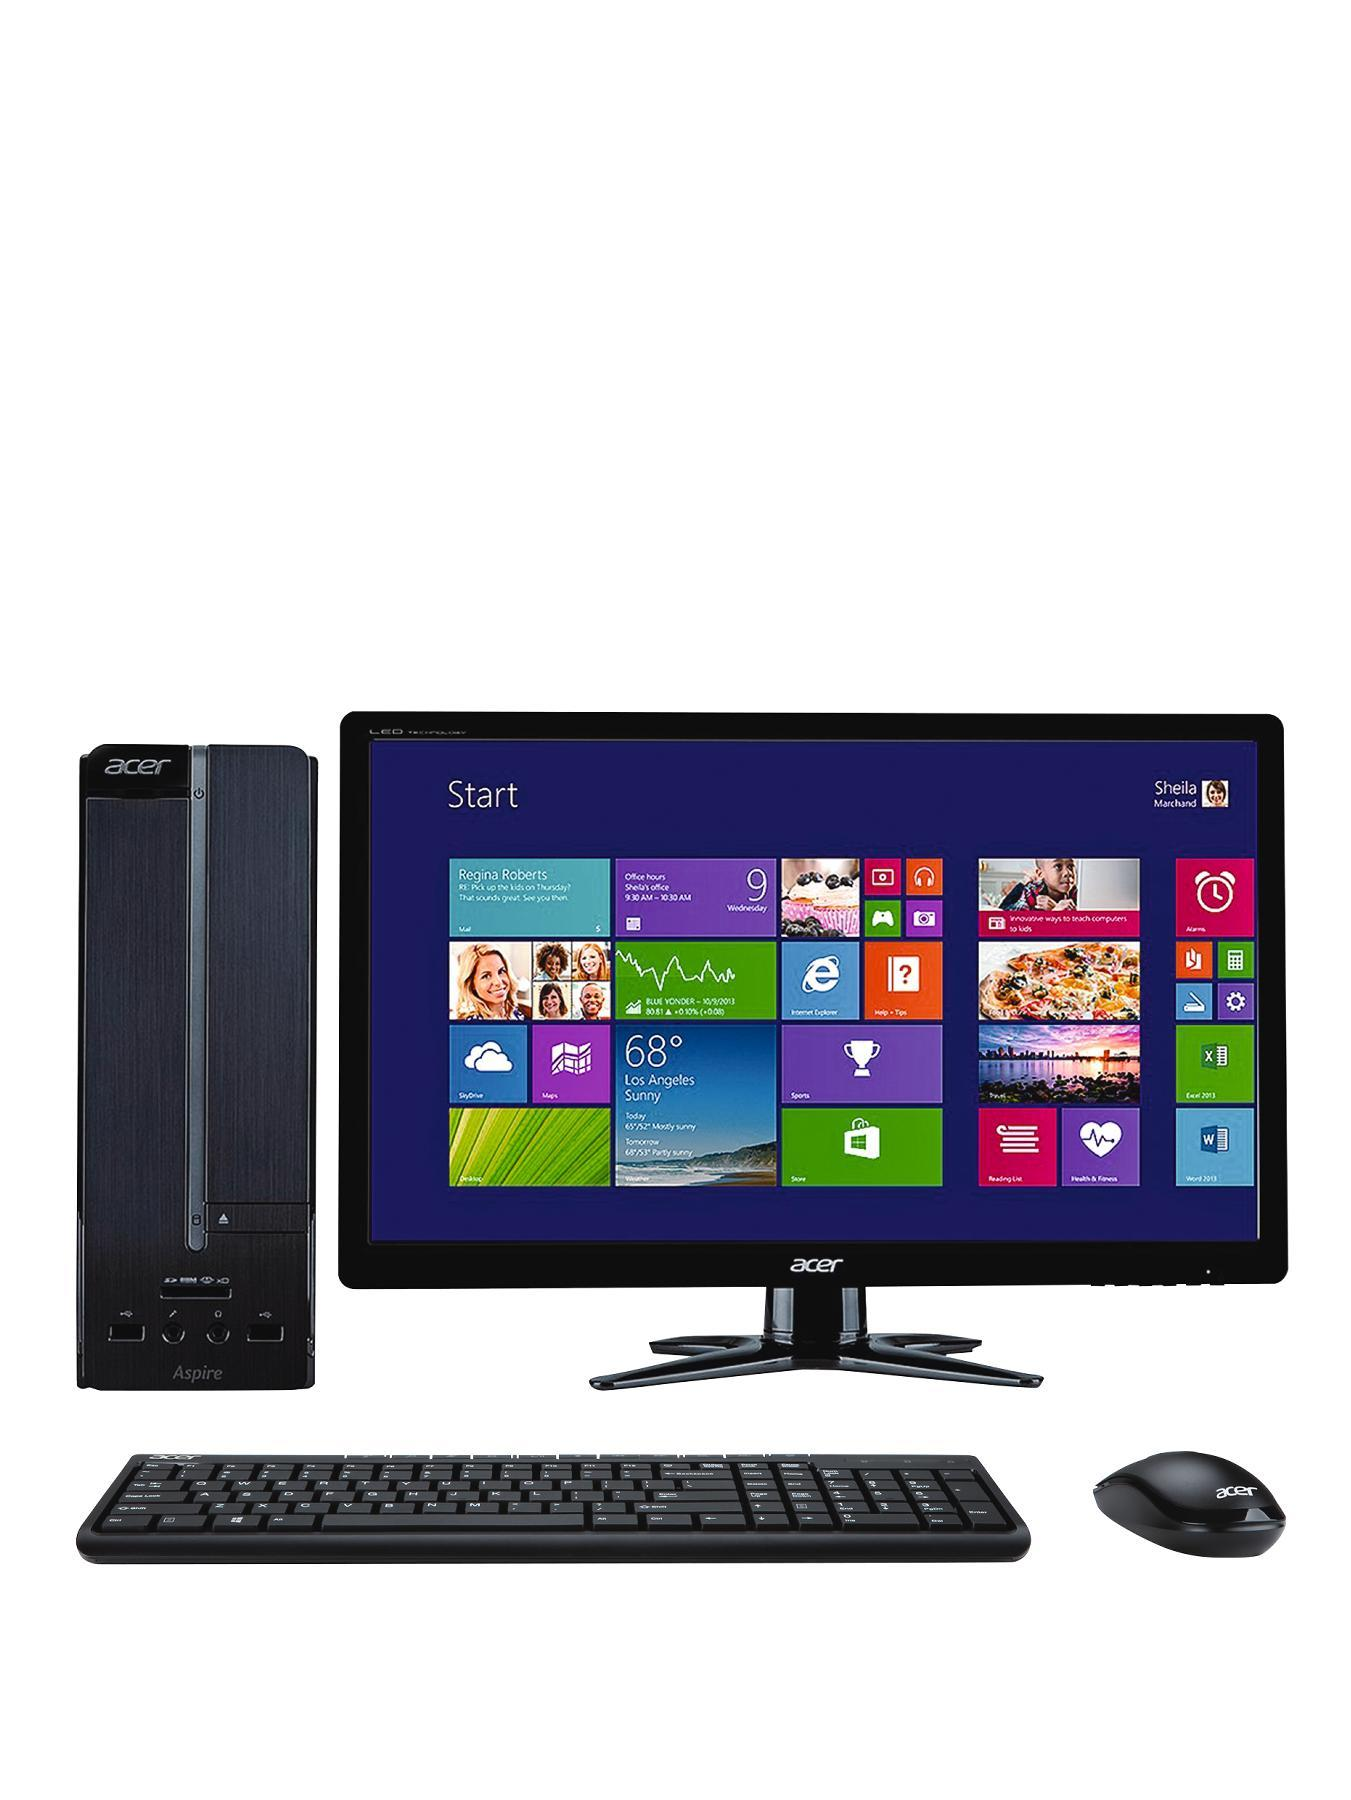 Acer Aspire XC-605 Intel Core i3 Processor, 6Gb RAM, 1Tb Hard Drive, Wi-Fi with 19.5 or 24 inch Monitor, Desktop PC Bundle - Black